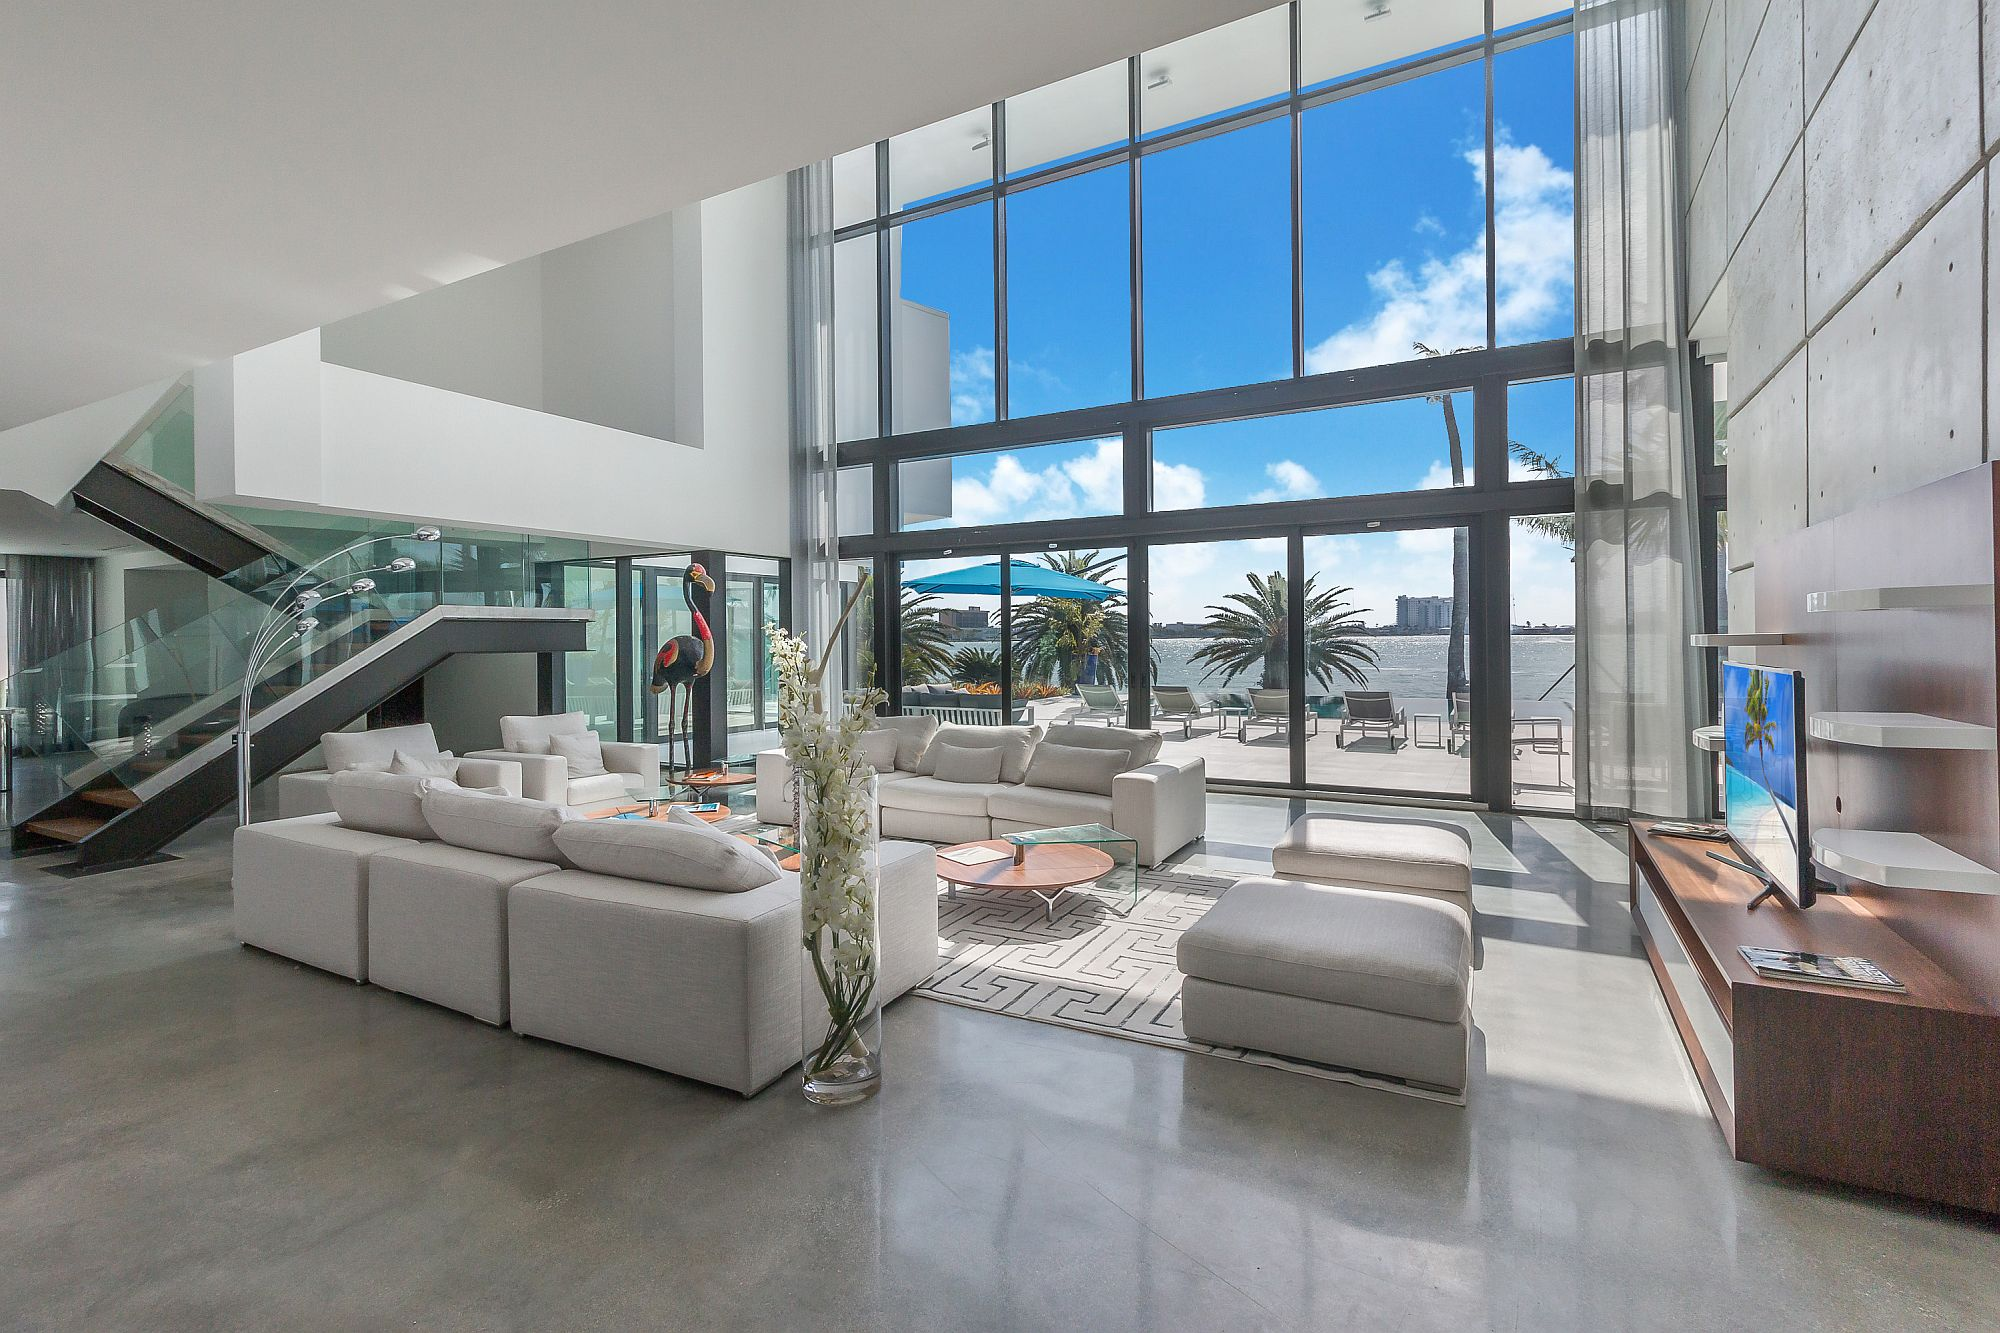 Spectacular interior of the home with white taking over